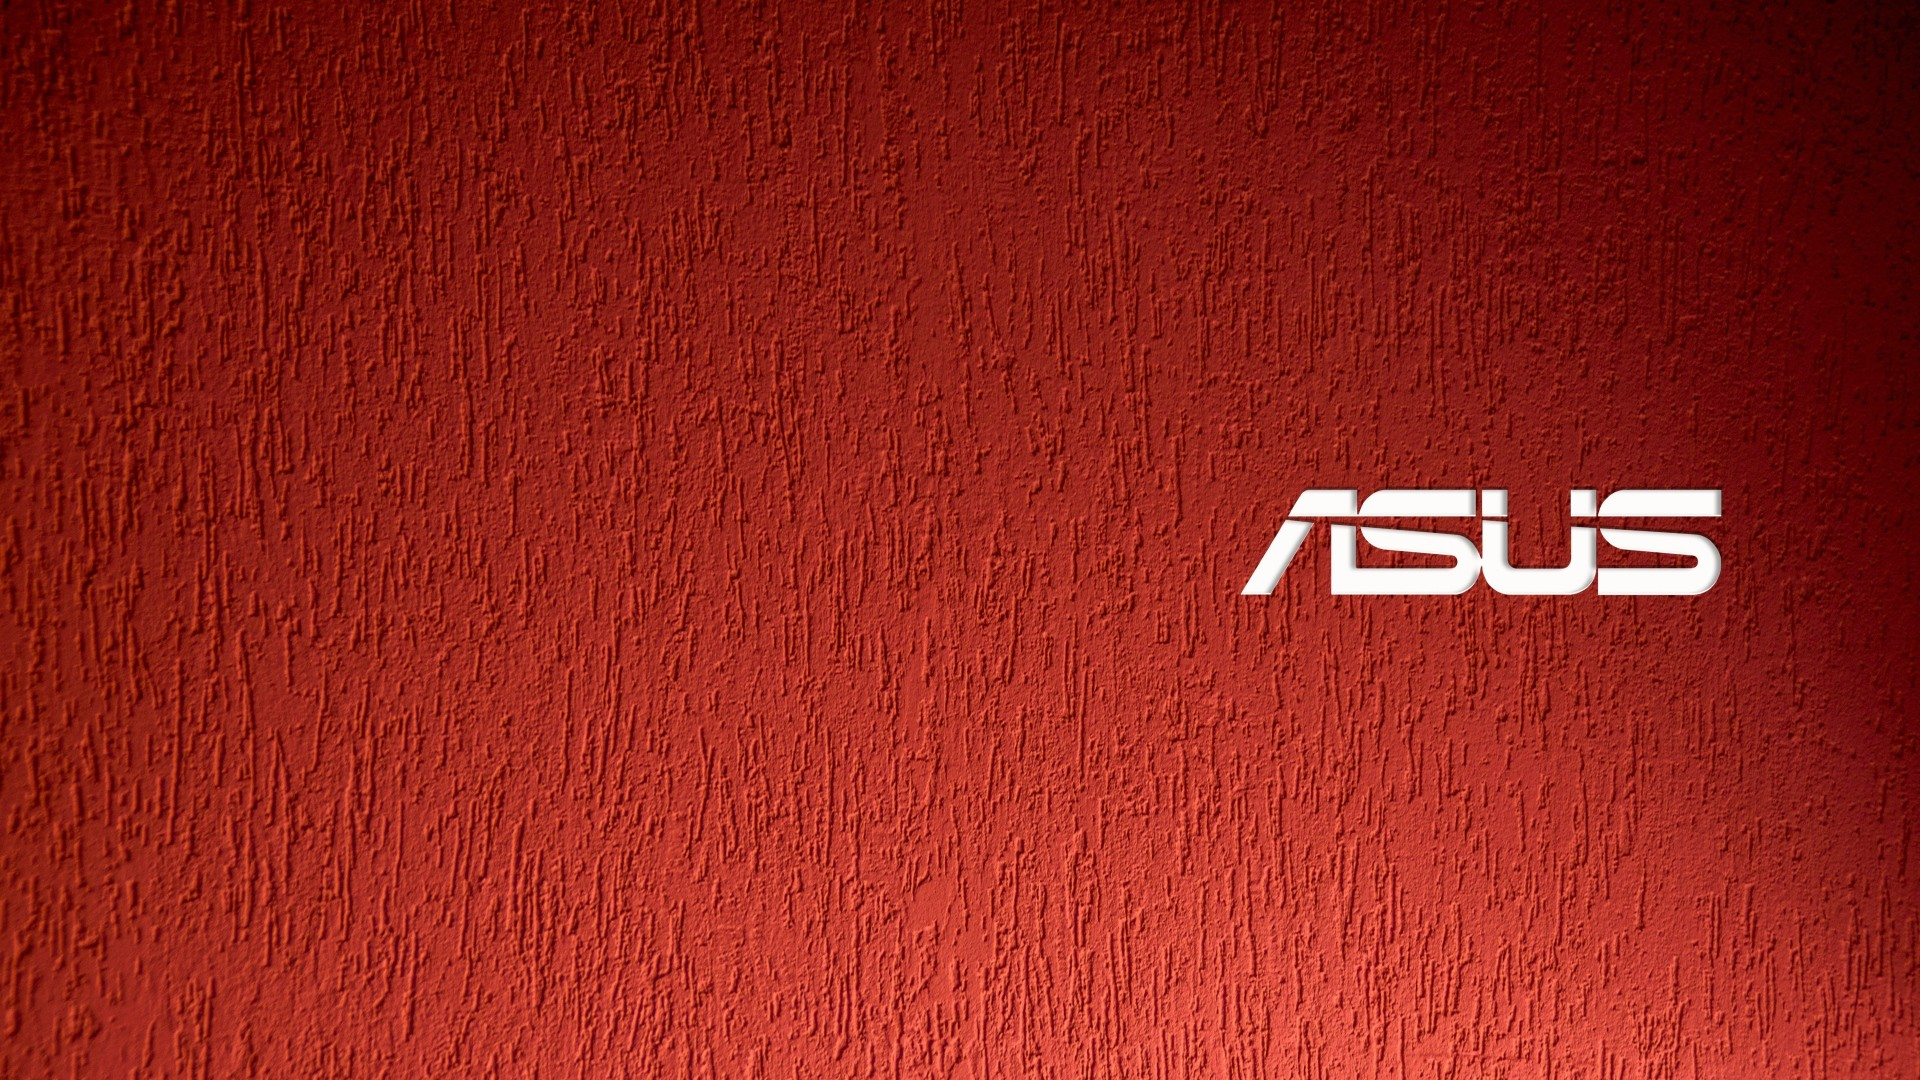 Asus Wallpaper for pc